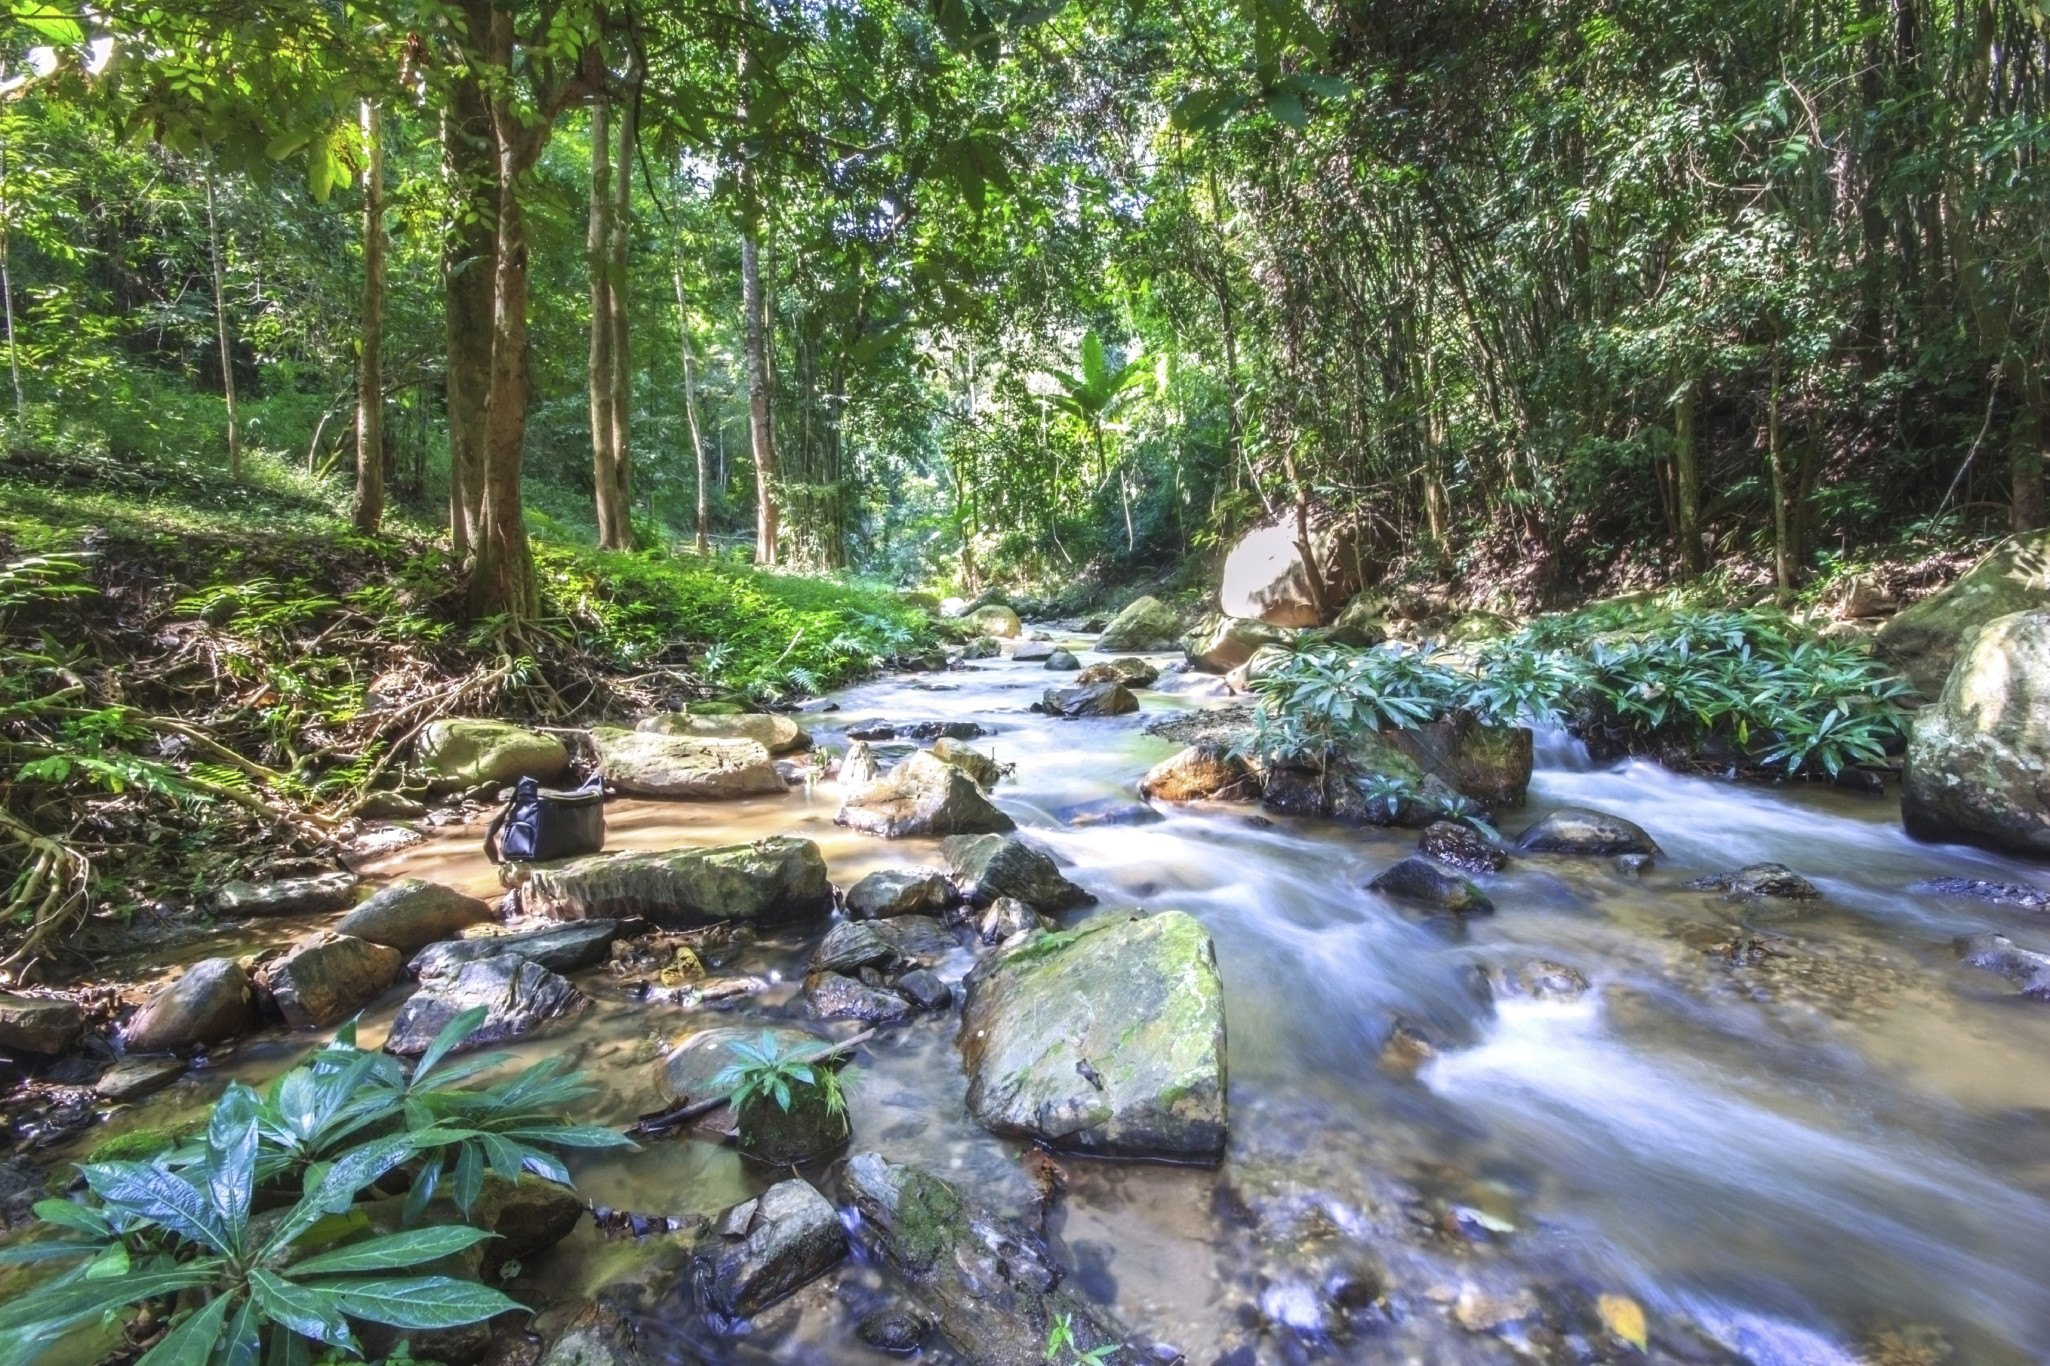 Streams in the tropical rainforest